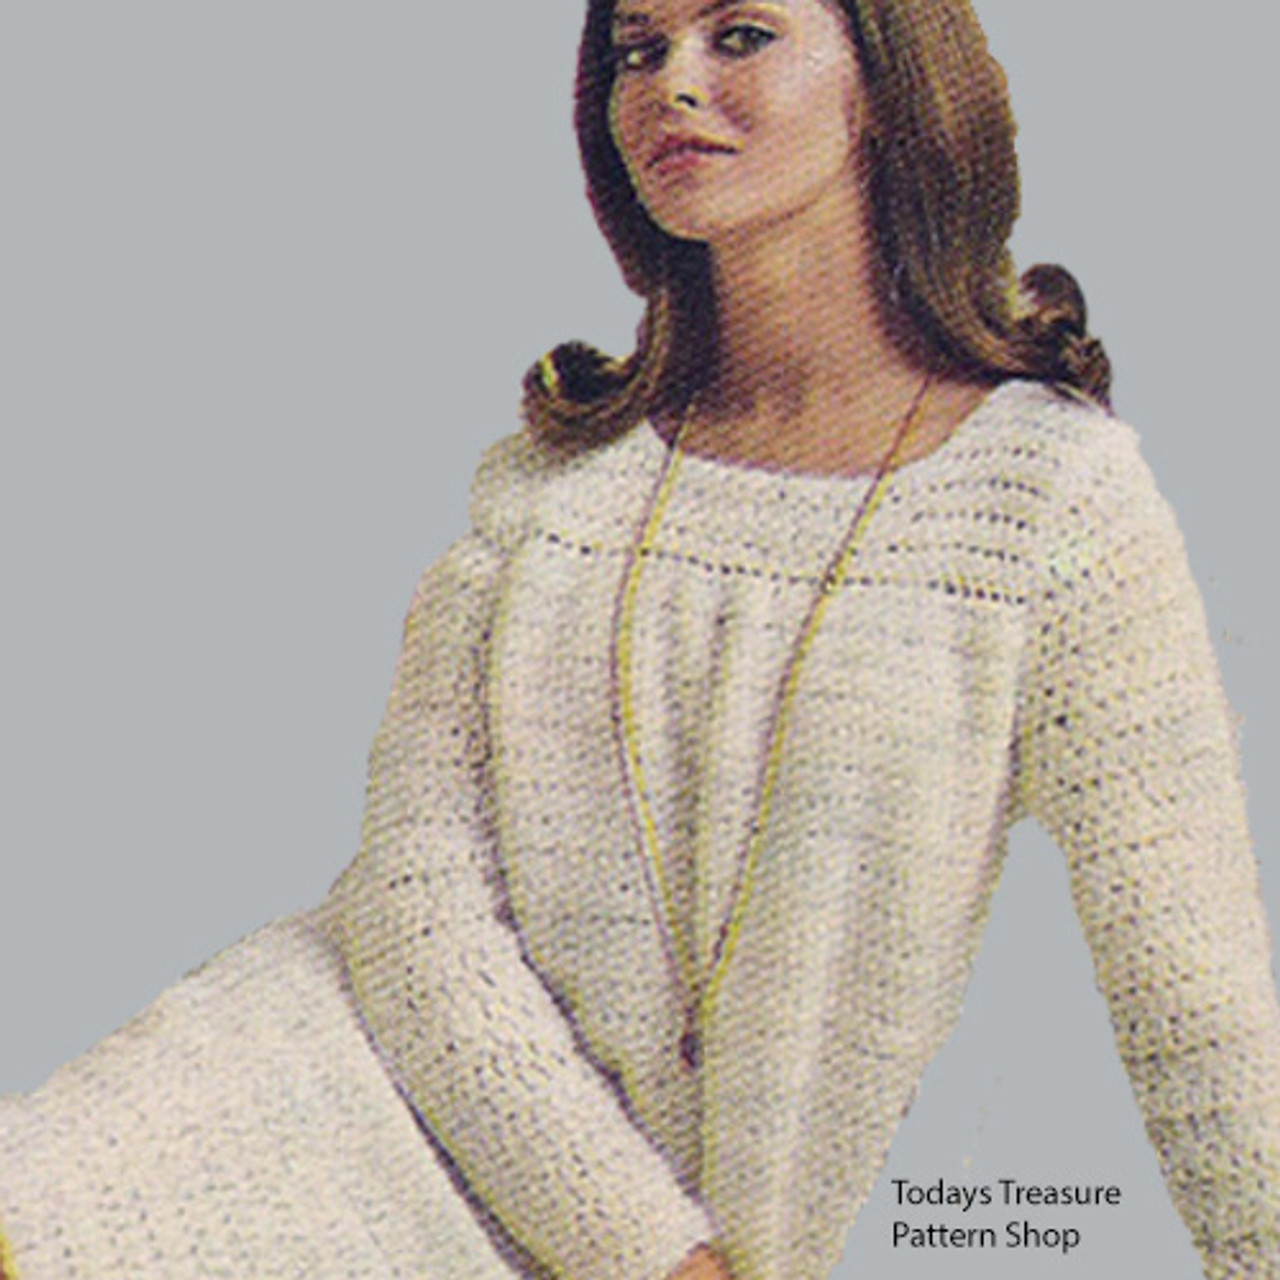 Vintage Yoked Crochet Dress Pattern with Long Sleeves